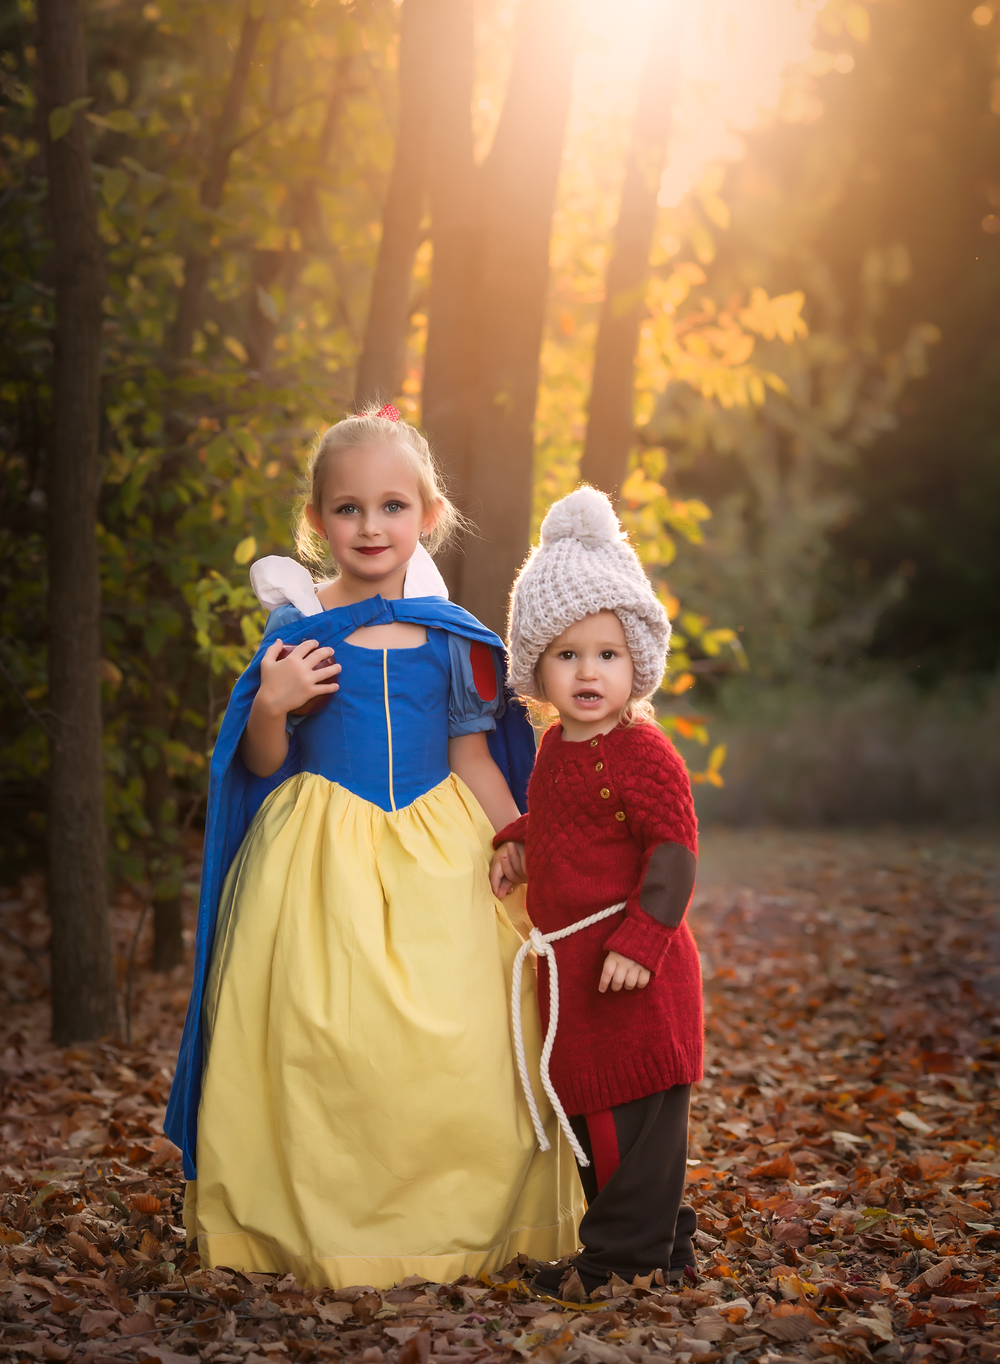 02 snow white and grumpy dwarf halloween disney toddler girl siblings sisters edmond ok photographer oklahoma city natural light (4).png